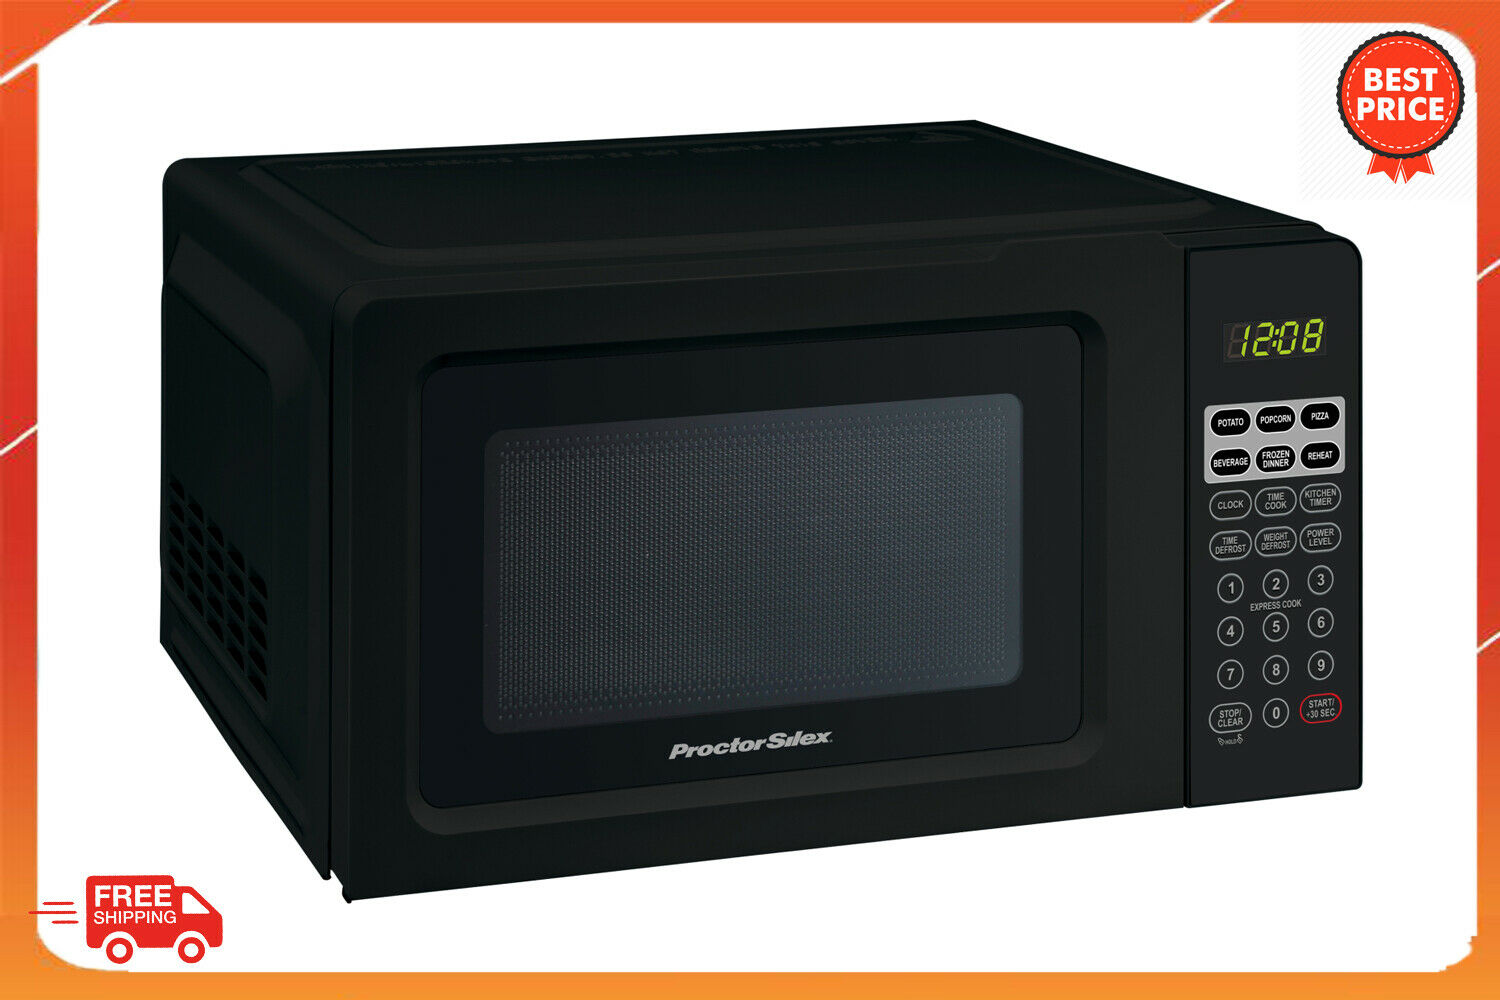 Kitchen Office Home Mini Microwave Oven Digital Countertop Appliance Black Small